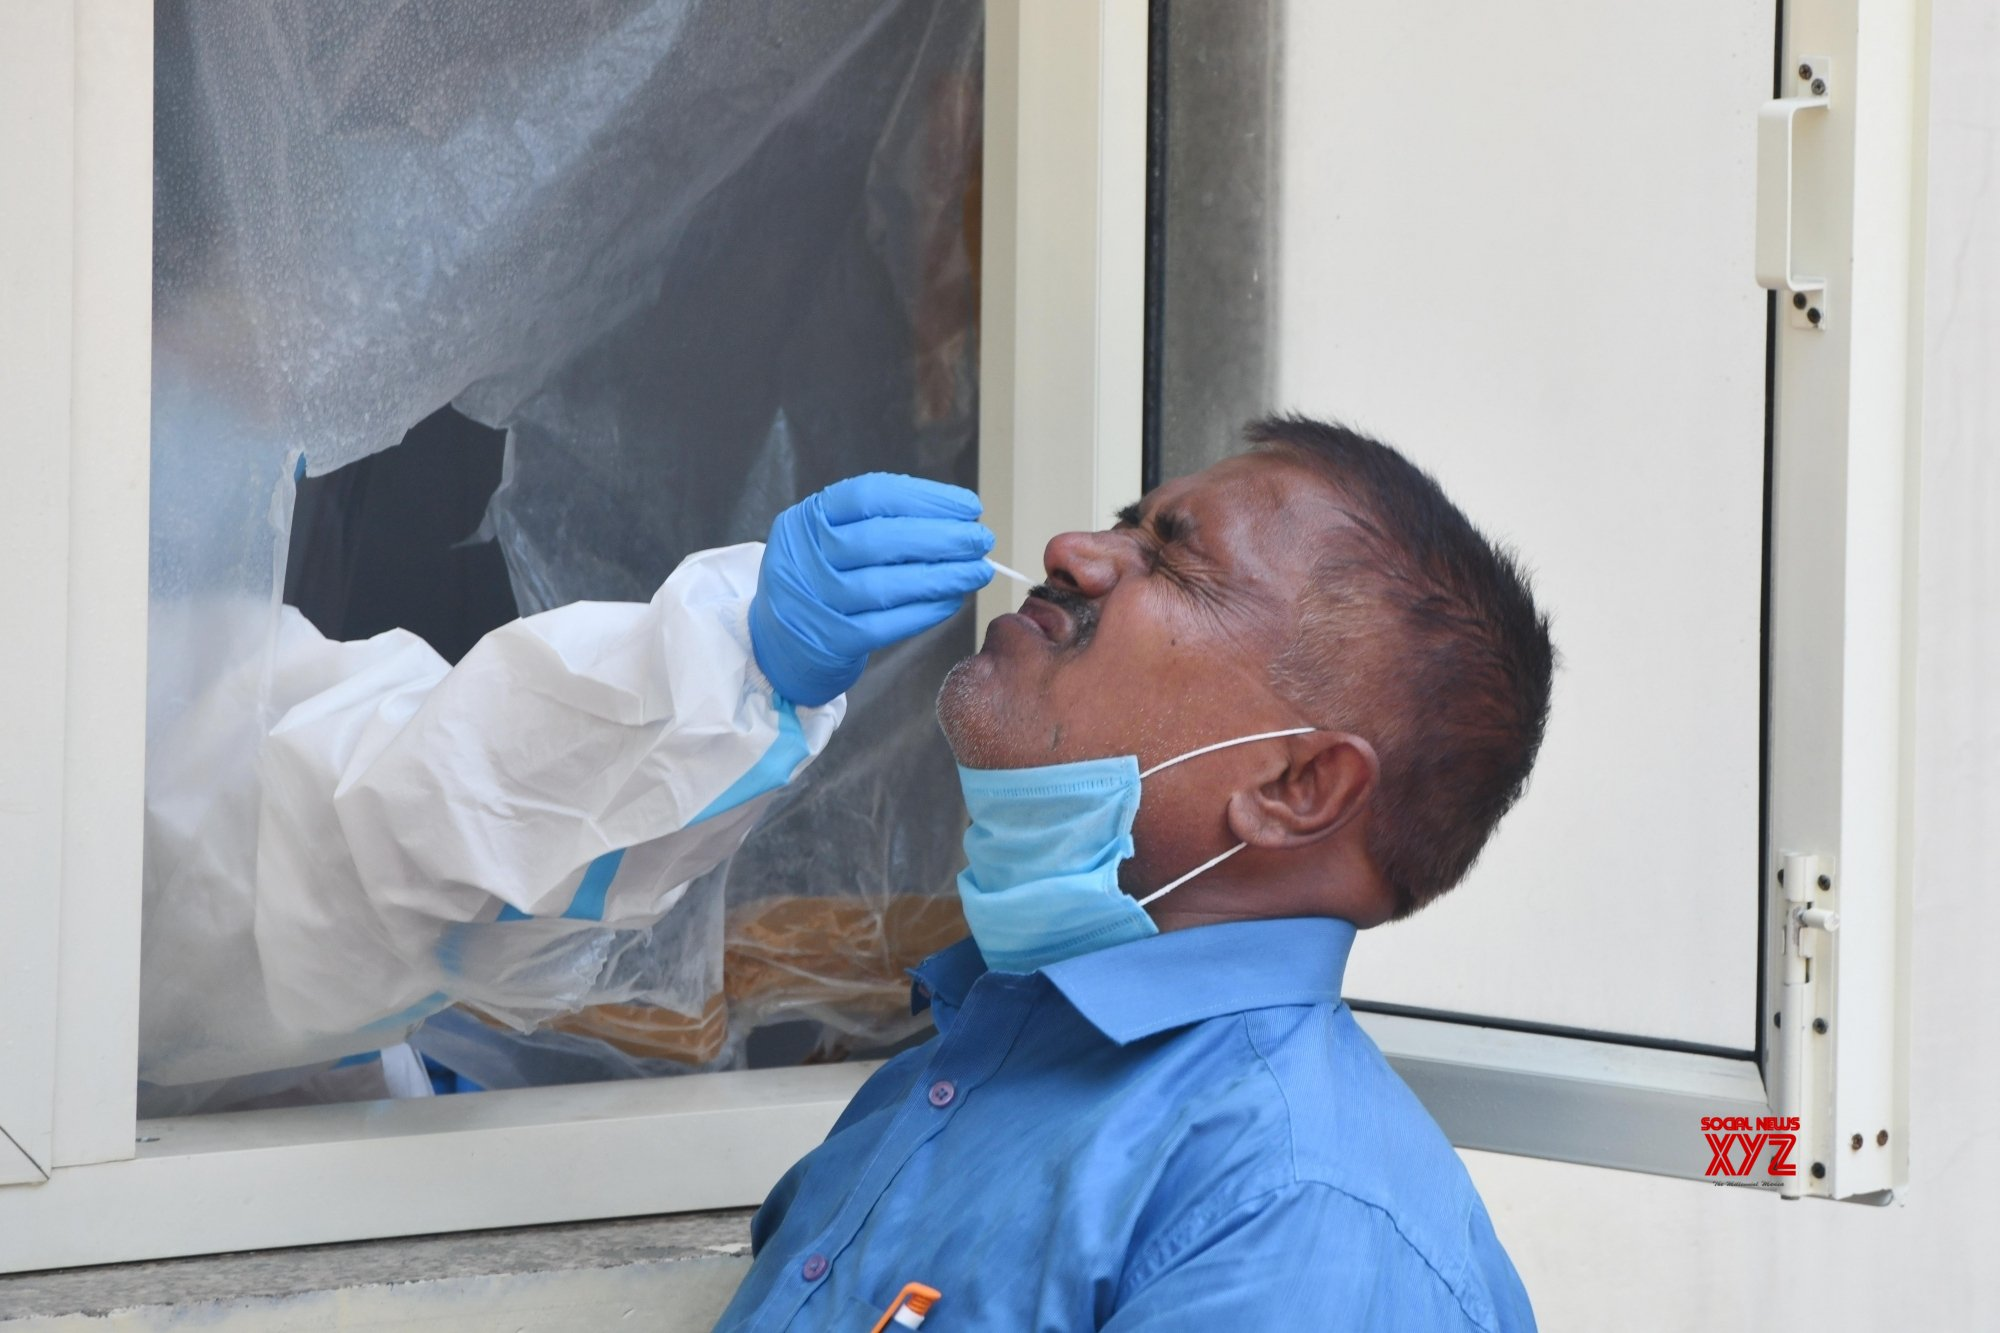 New Delhi: Swab samples for COVID - 19 testing collected at Nehru Homoeopathic Medical College and Hospital #Gallery